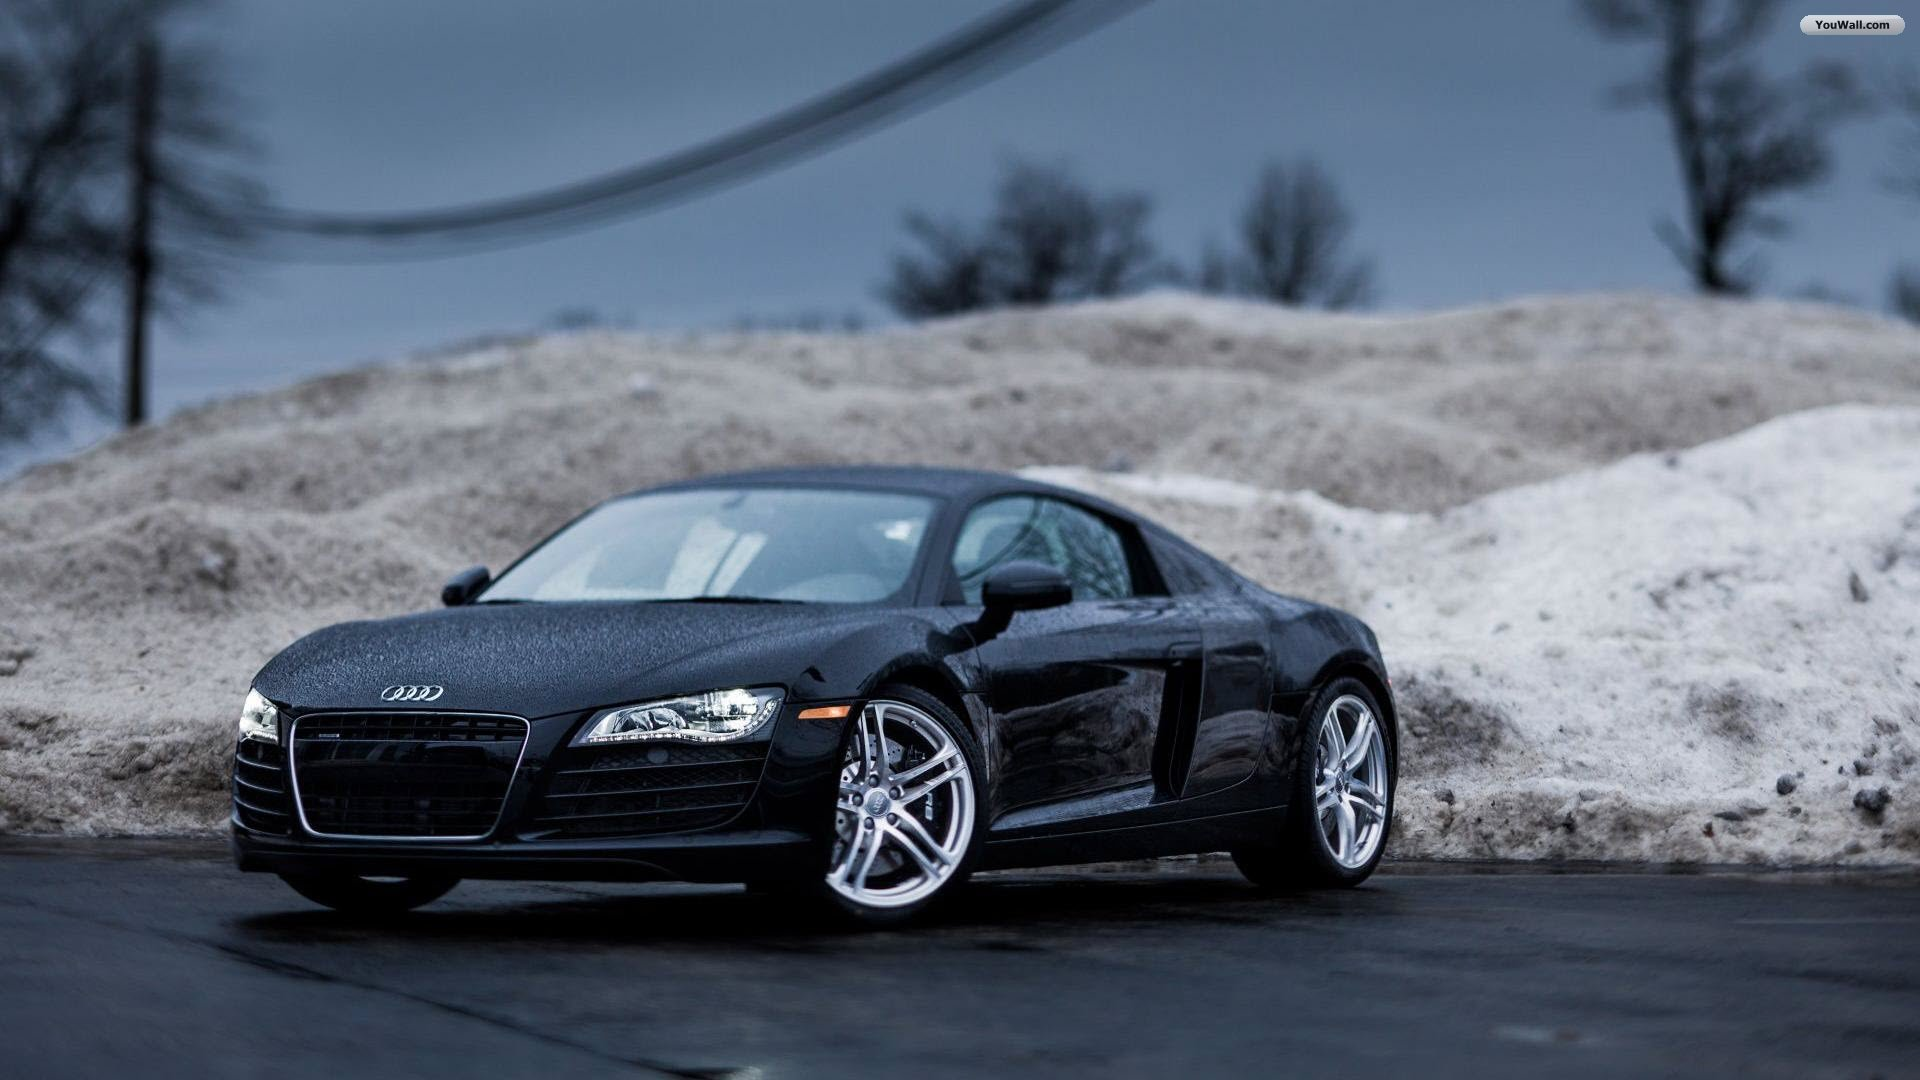 Black Audi R8 Wallpaper   wallpaperwallpapersfree wallpaper 1920x1080